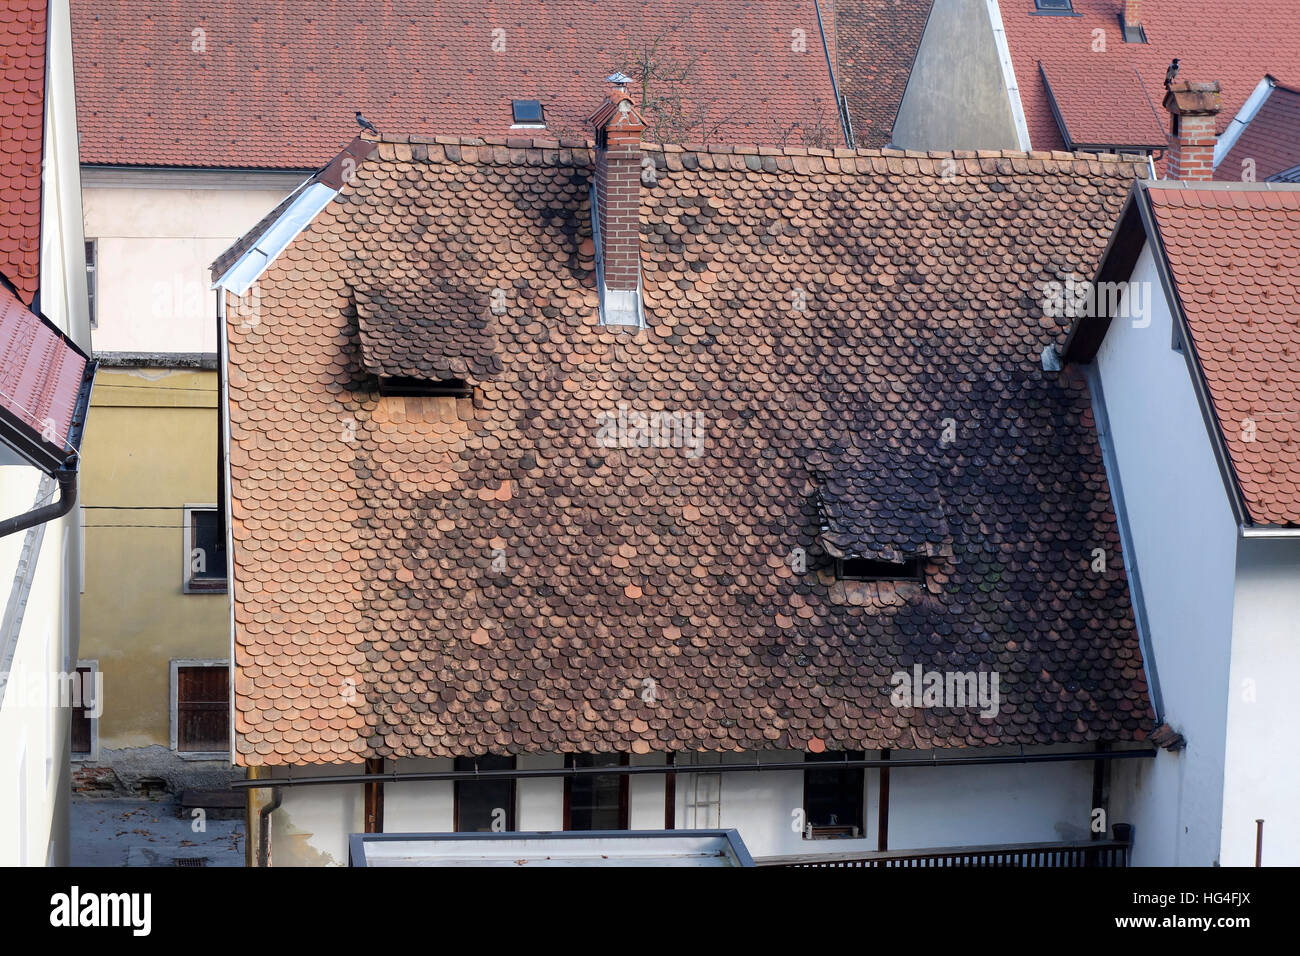 Medieval roof construction with openings for attic ventilation - Stock Image